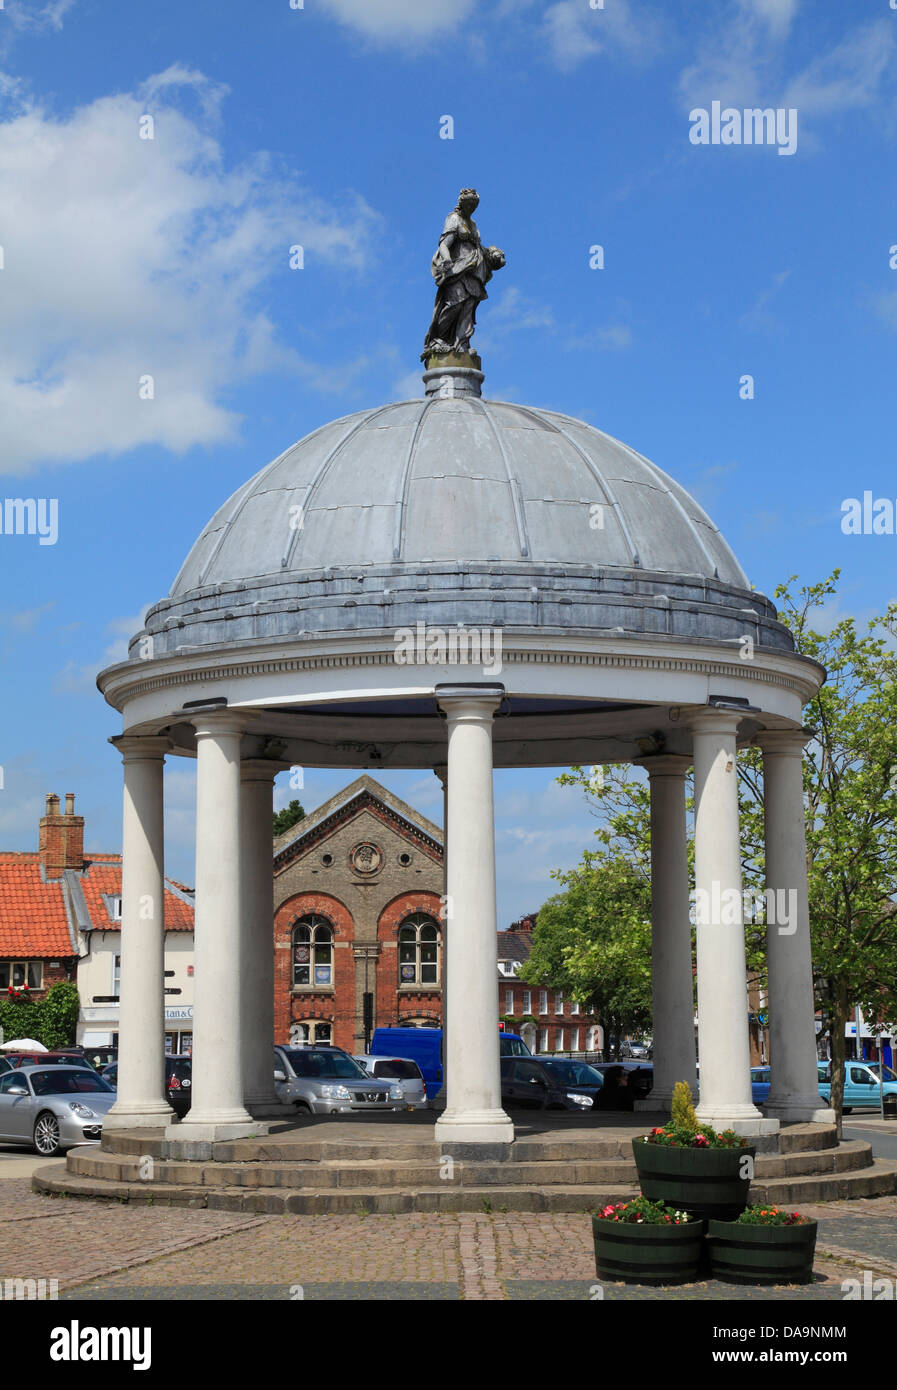 Swaffham, Norfolk, 18th century Market Cross, England UK town towns - Stock Image